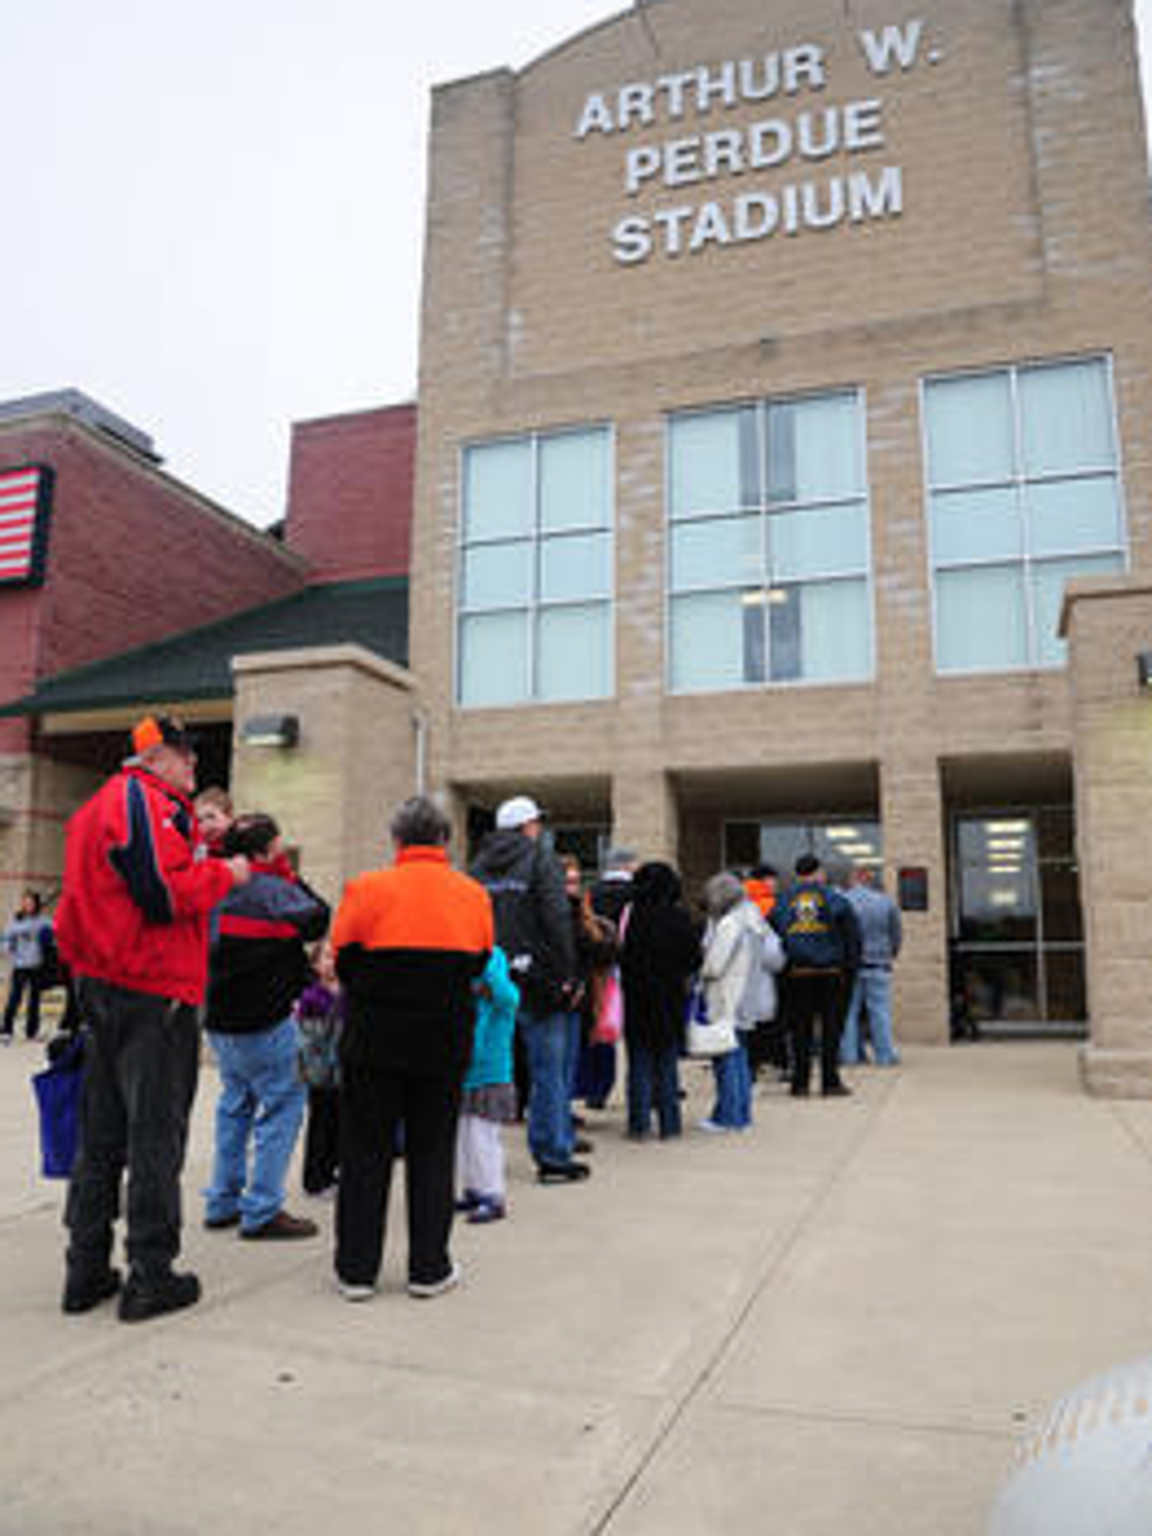 Fans lineup prior to a Shorebirds game at Arthur W.